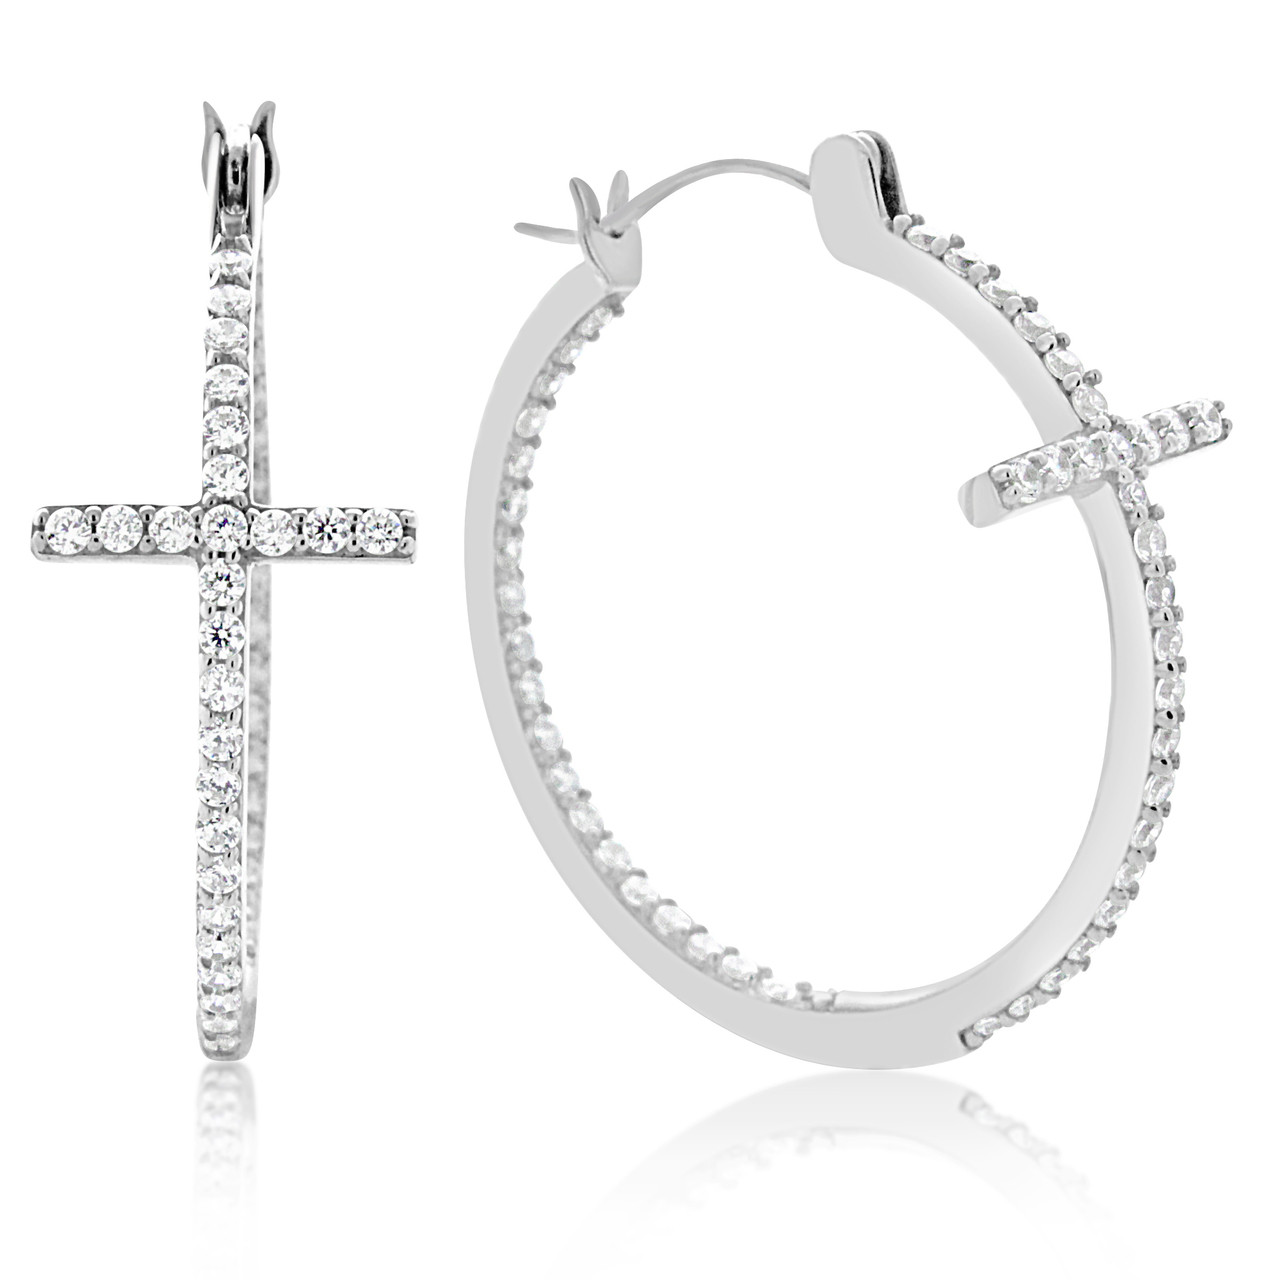 a80a644a442d81 Sterling Silver Inside and Out Cross Cubic Zirconia Hoop Earrings - Artune  Jewelry Online